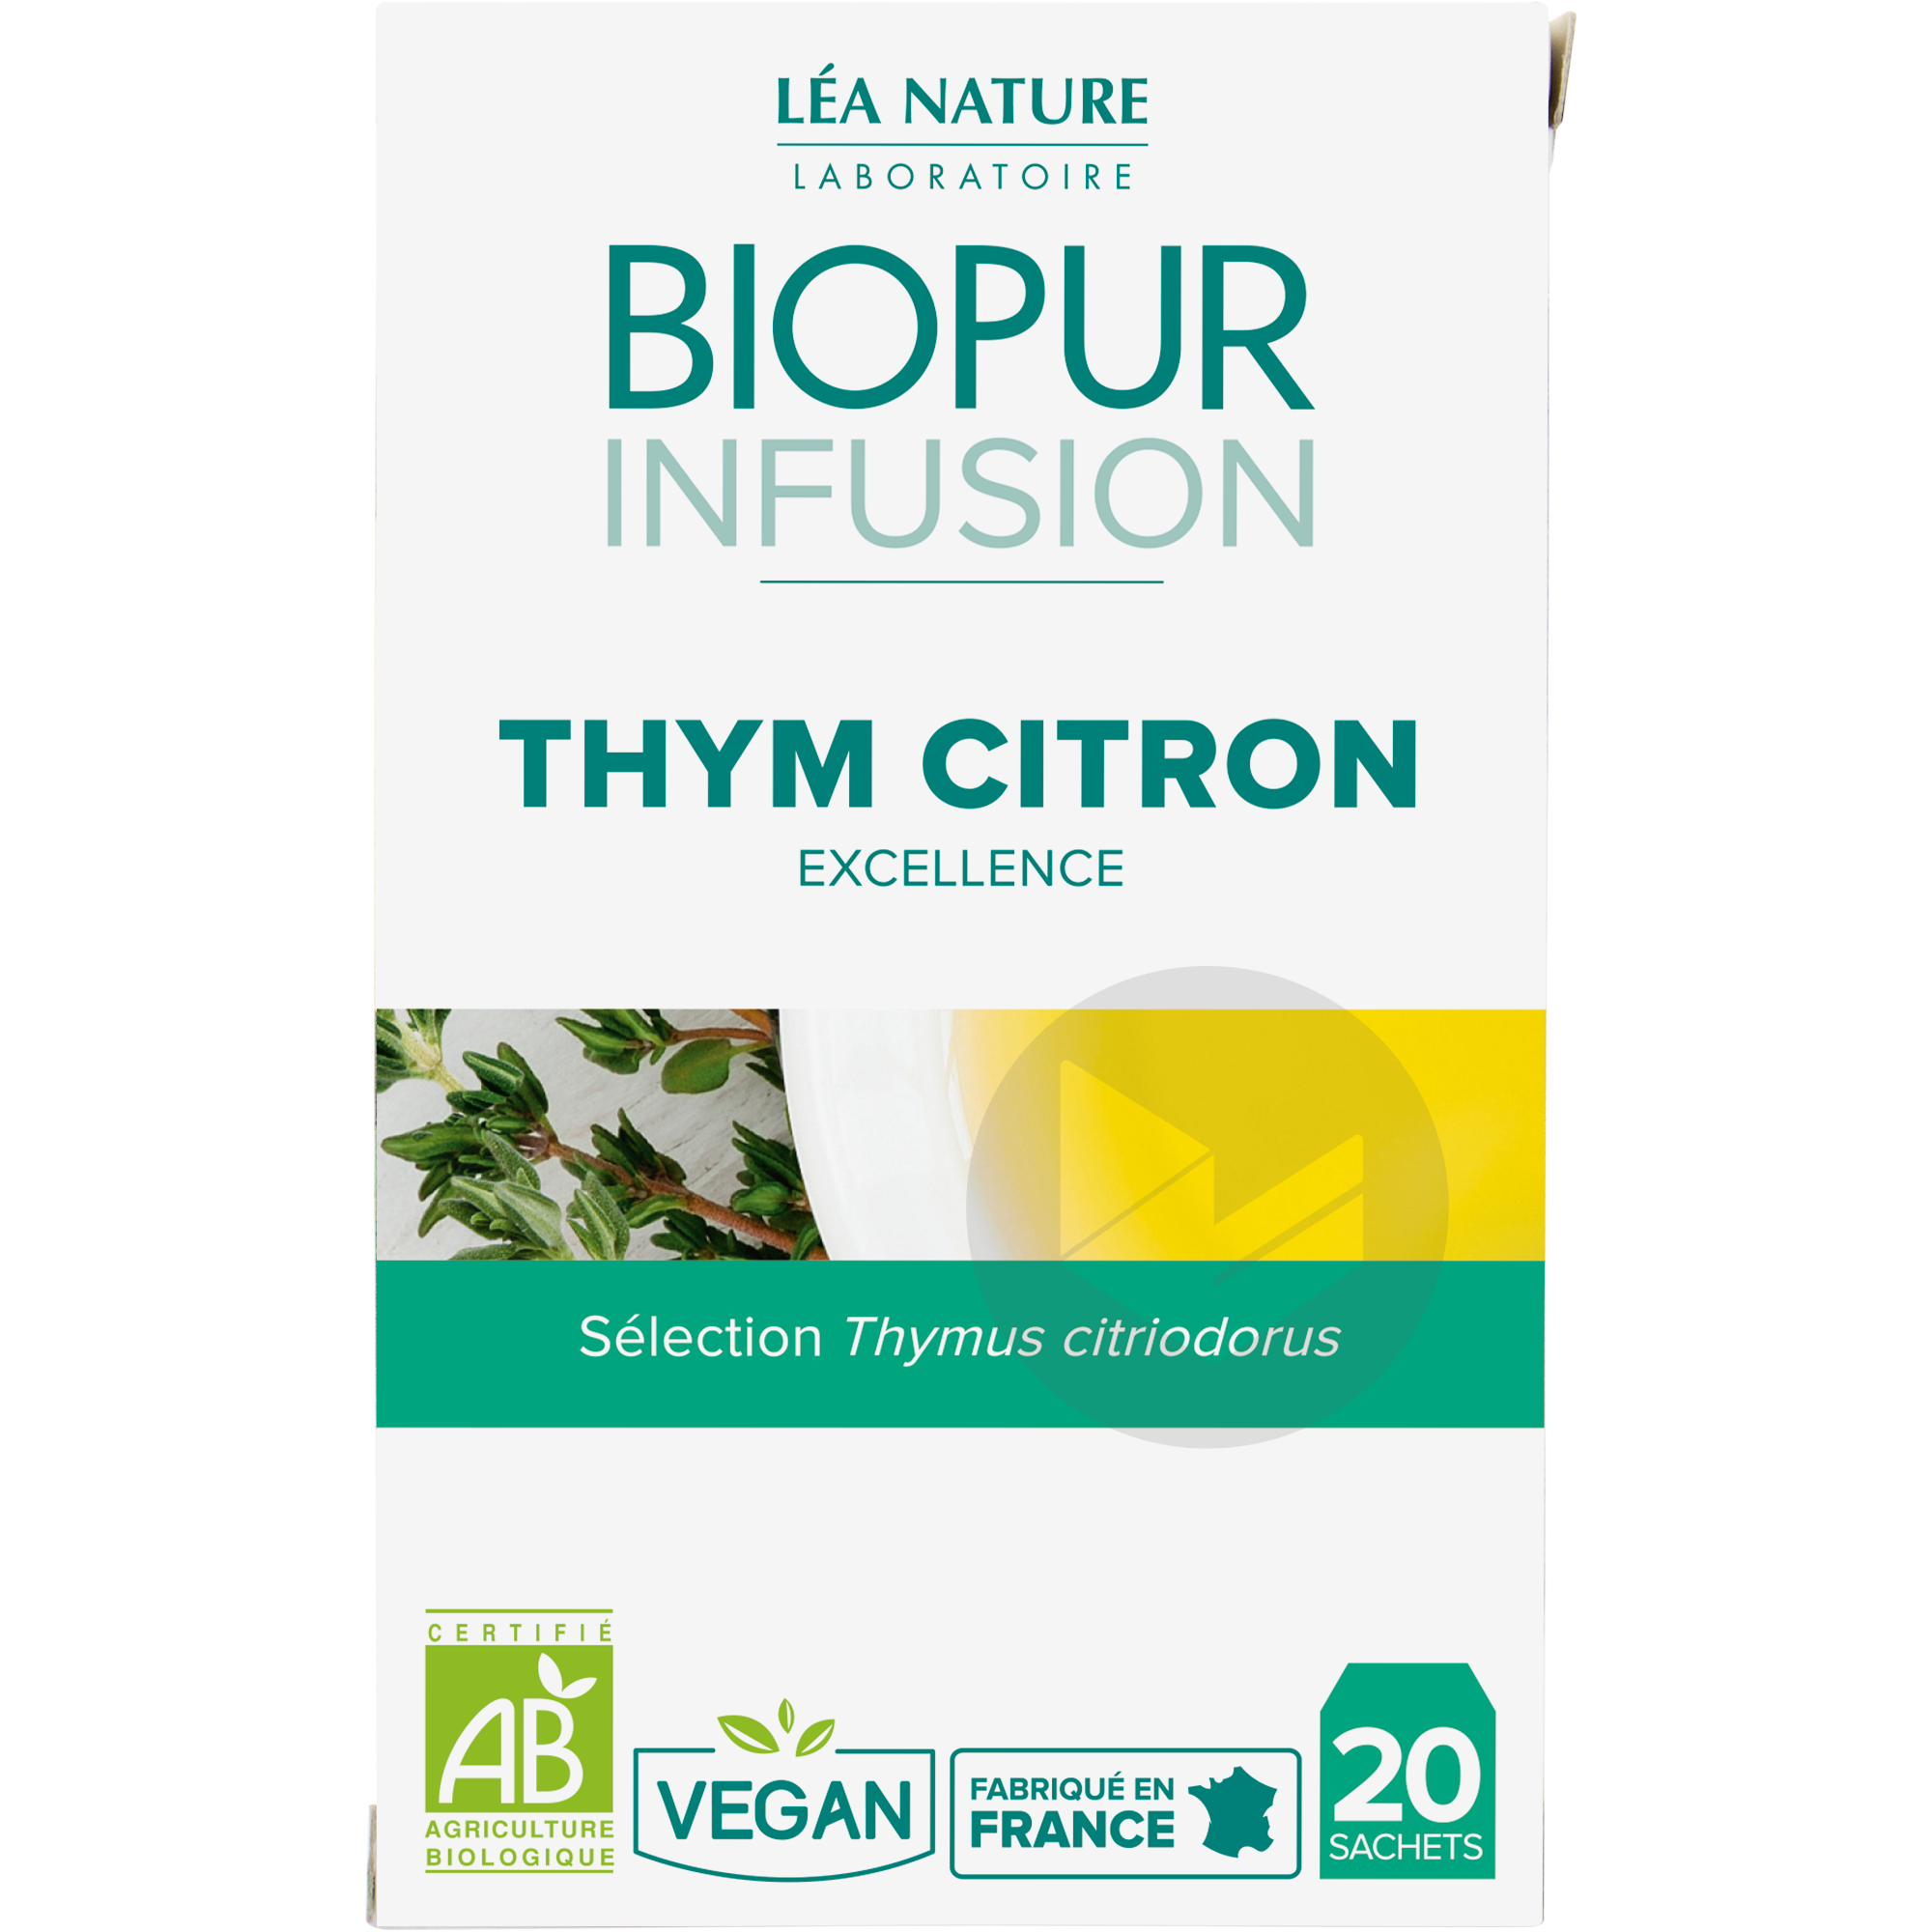 Infusion Thym citron